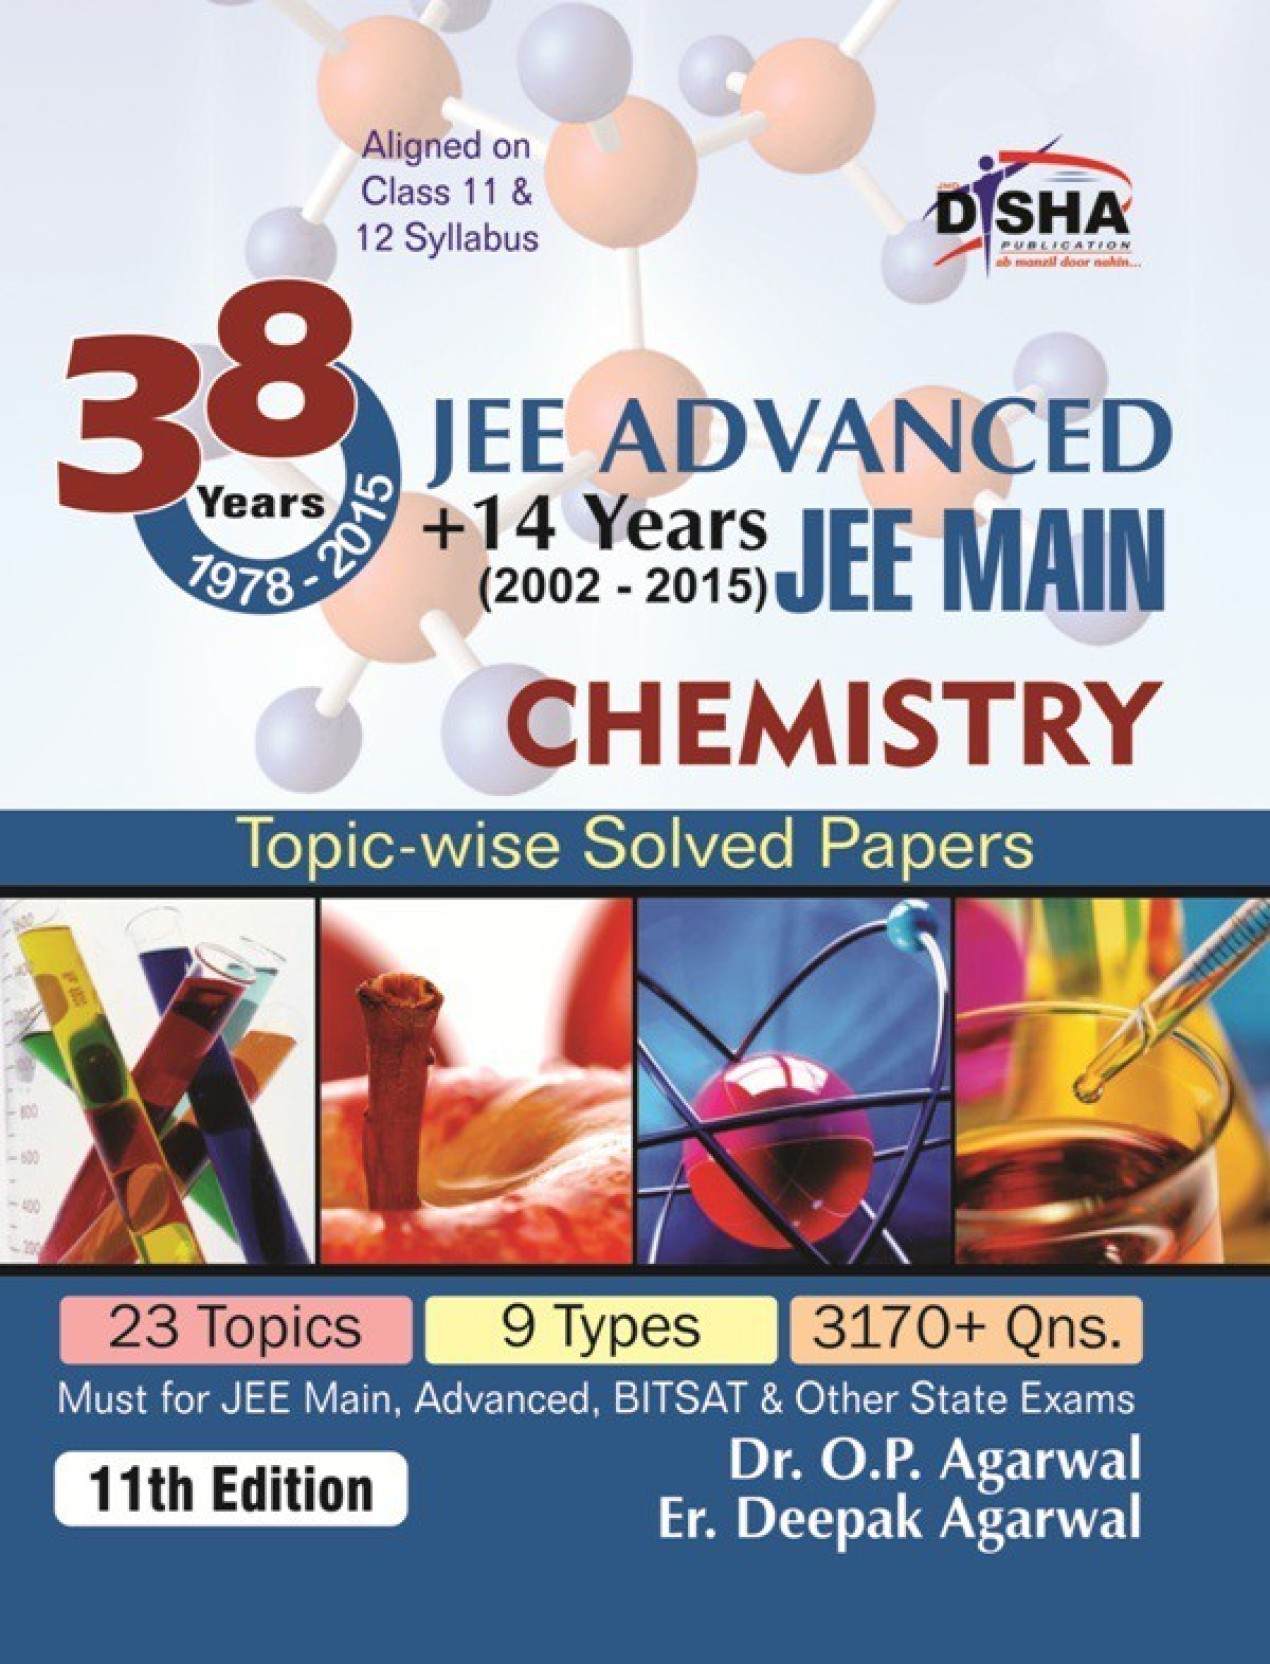 JEE Advanced + 14 yrs JEE Main Topic-wise Solved Paper CHEMISTRY 11th  Edition 11. ADD TO CART